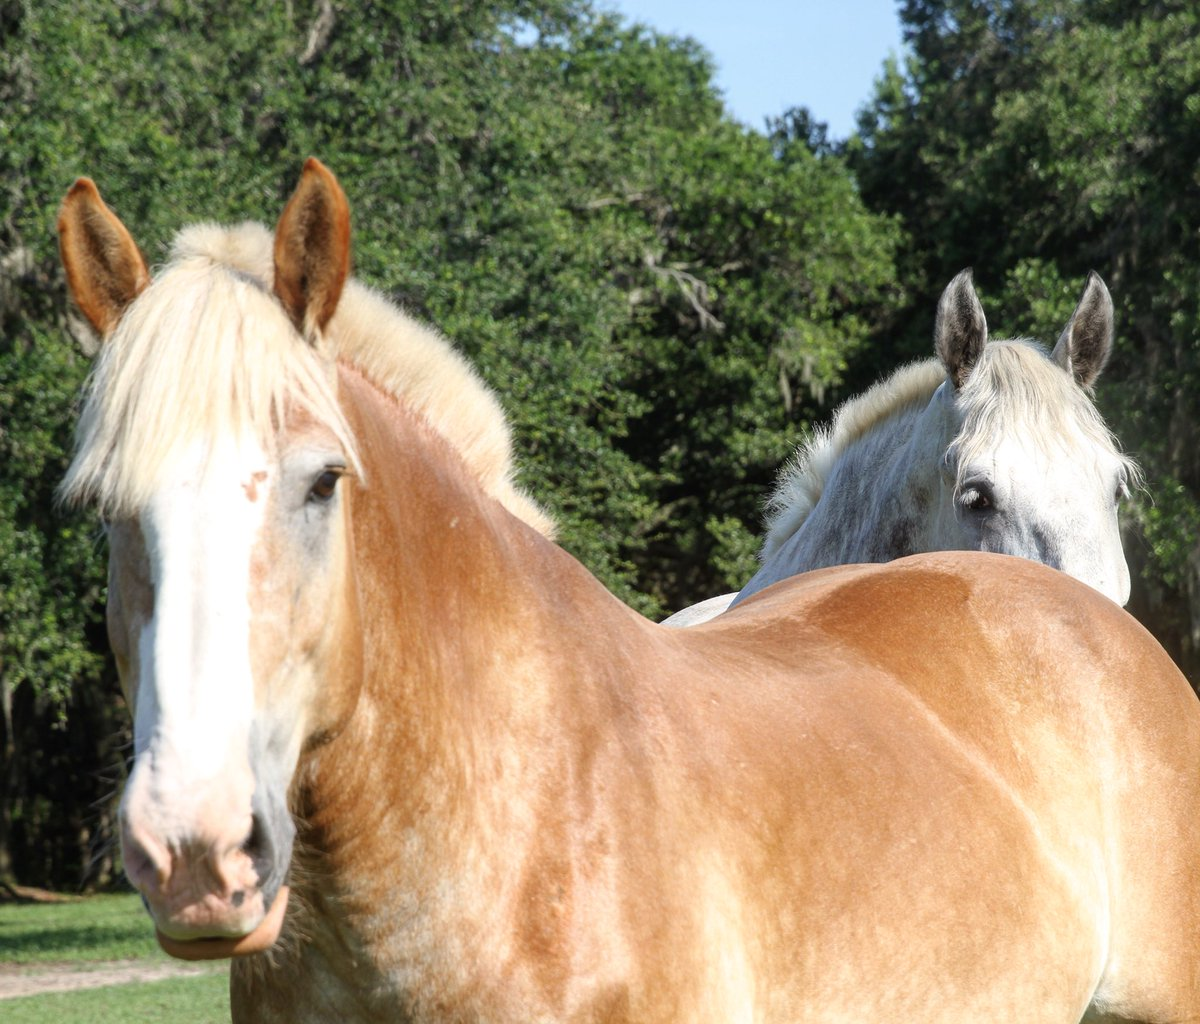 Seeing these beautiful faces keeps us going on a Monday... #MondayMotivation #Horses #Charleston <br>http://pic.twitter.com/rTCk4TniMg